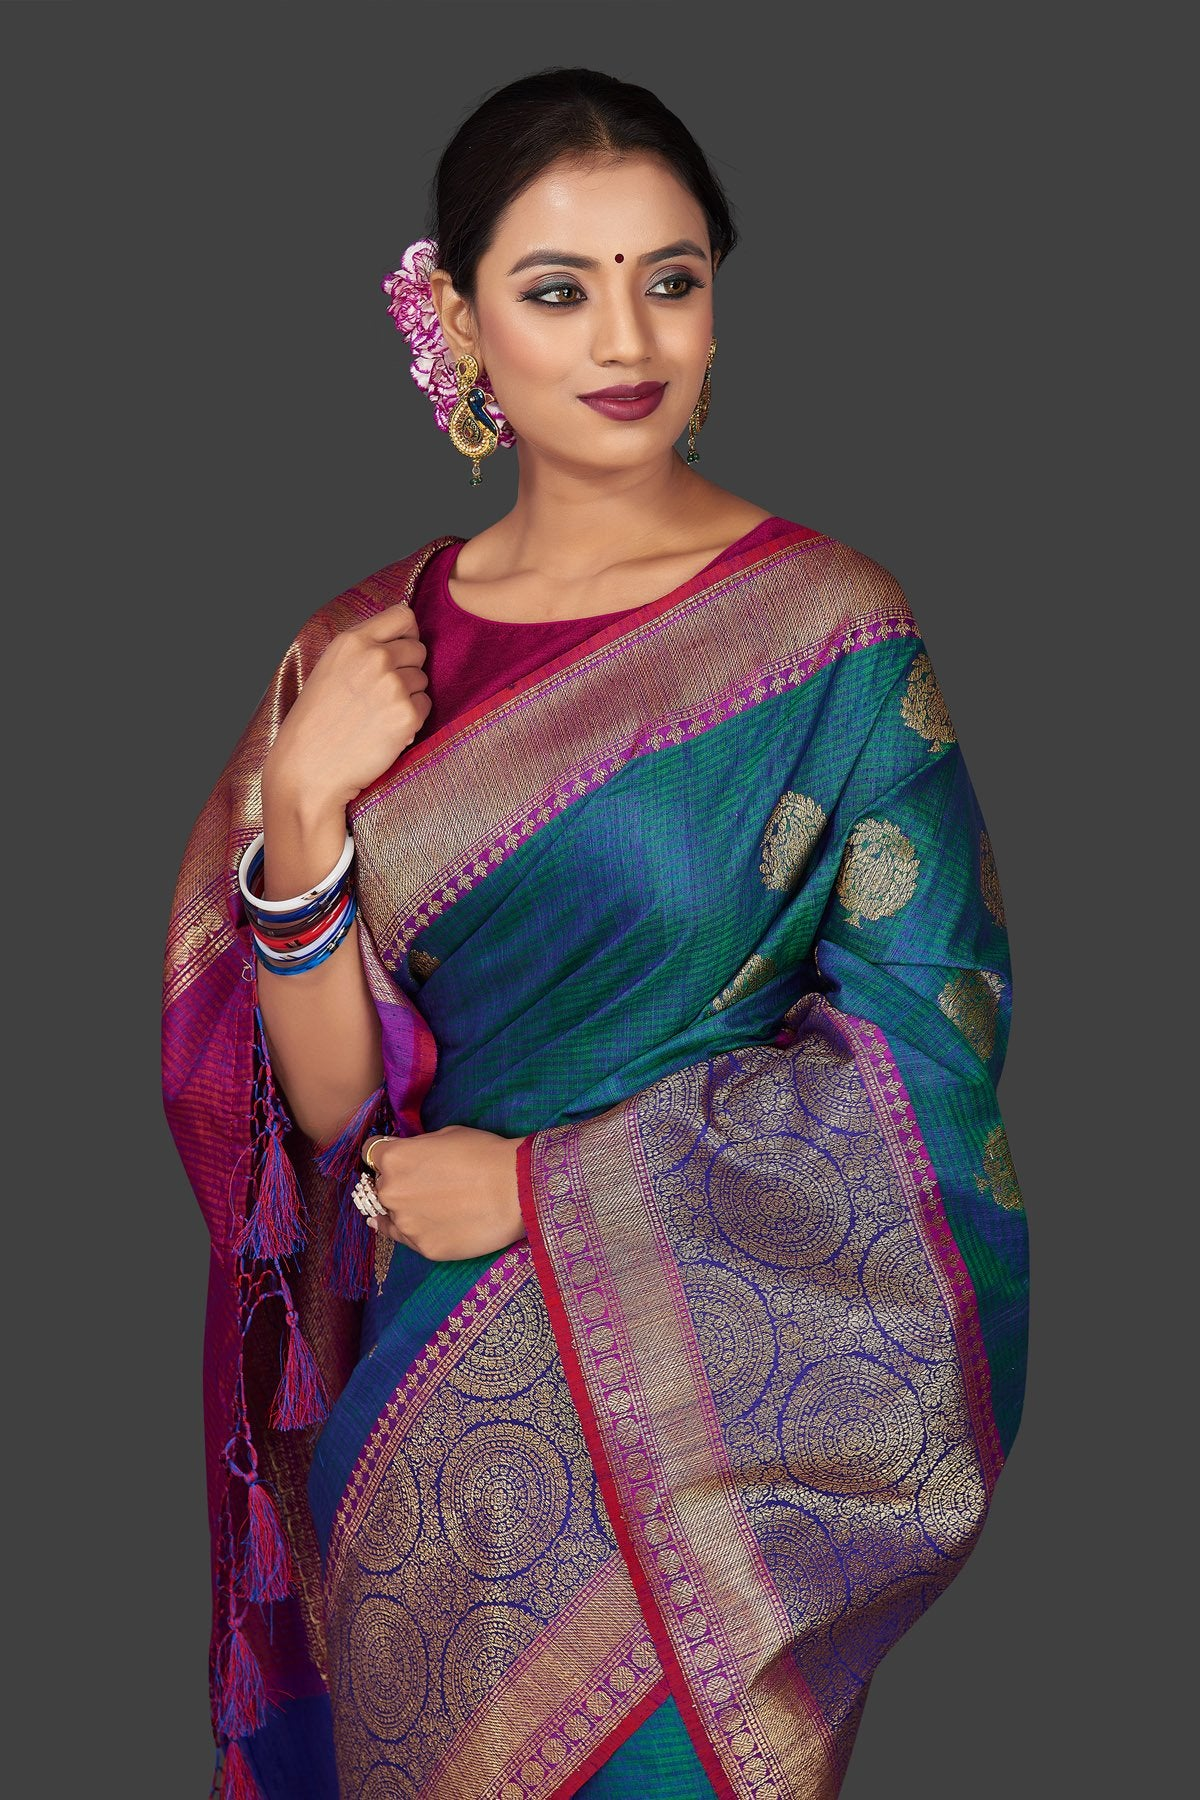 Buy stunning greenish blue tassar Banarasi sari online in USA with antique zari purple and blue border and zari buta. Garner compliments on weddings and special occasions with exquisite Banarasi saris, handwoven silk sarees, tussar sarees from Pure Elegance Indian fashion store in USA.-closeup